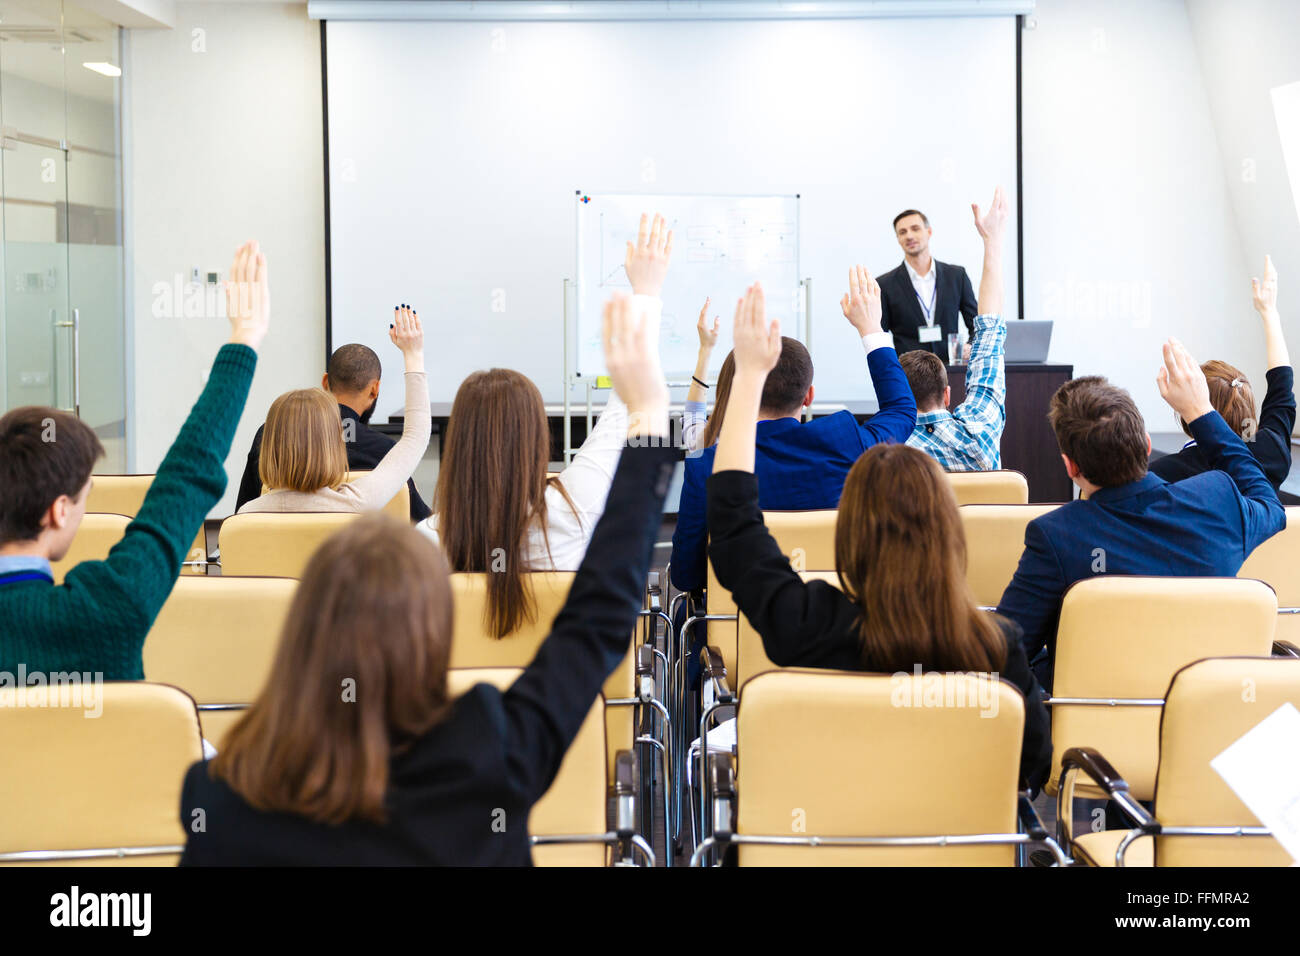 Speaker answering the questions of audience on business conference in  meeting hall - Stock Image